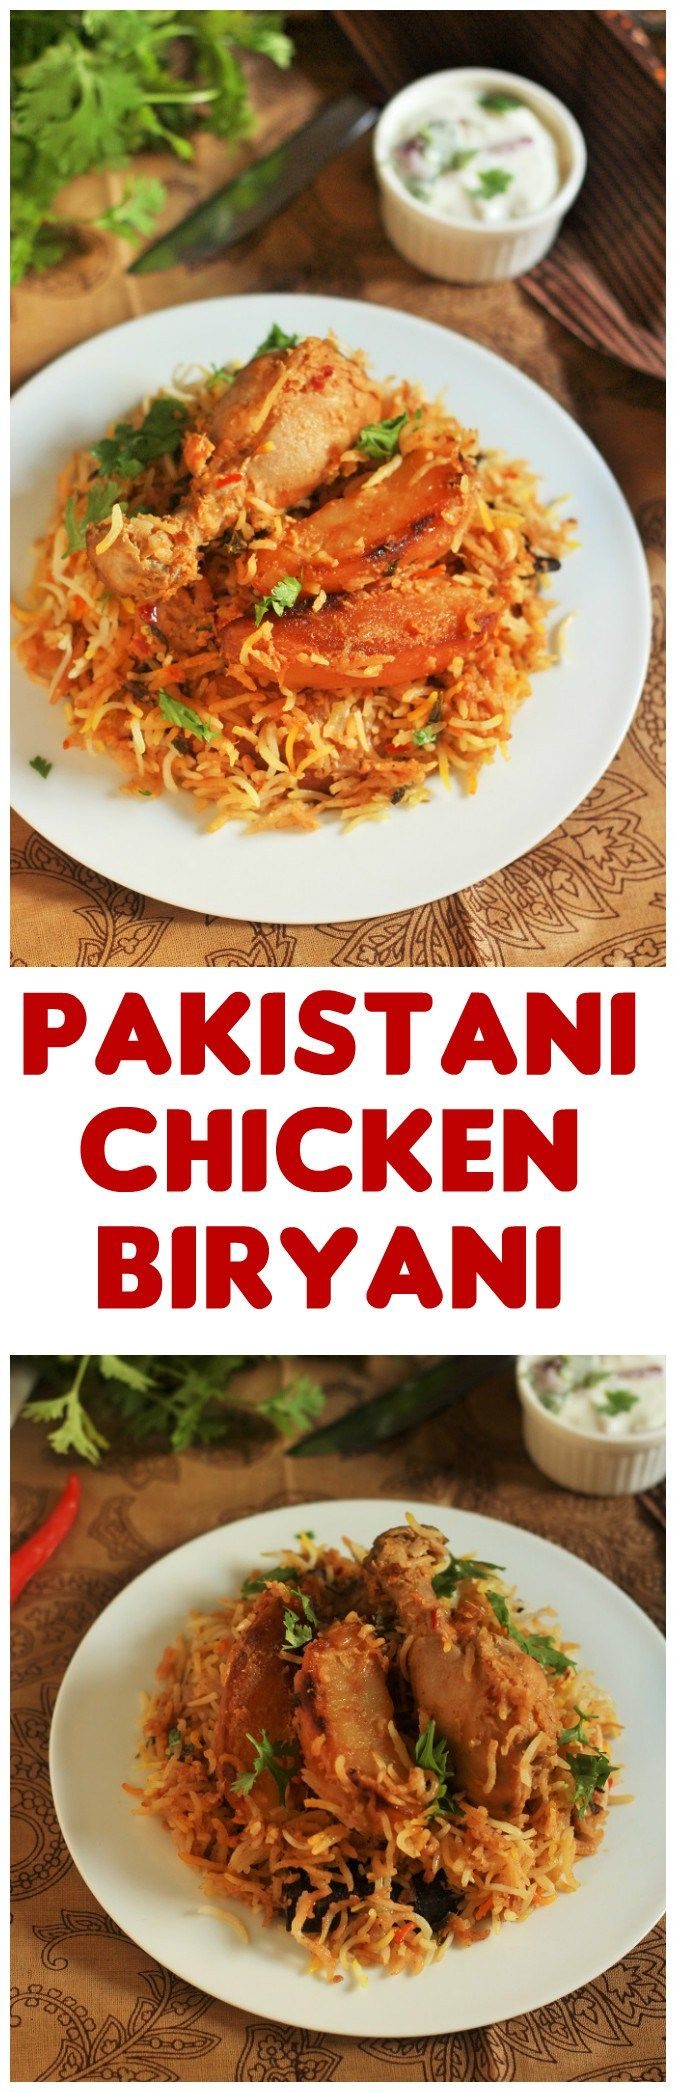 Pakistani Chicken Biryani recipe-A chicken biryani recipe made in Pakistani Style with chicken and potatoes. #halalrecipes #faskitchen #chickenbiryani#pakistanibiryani #biryanirecipe